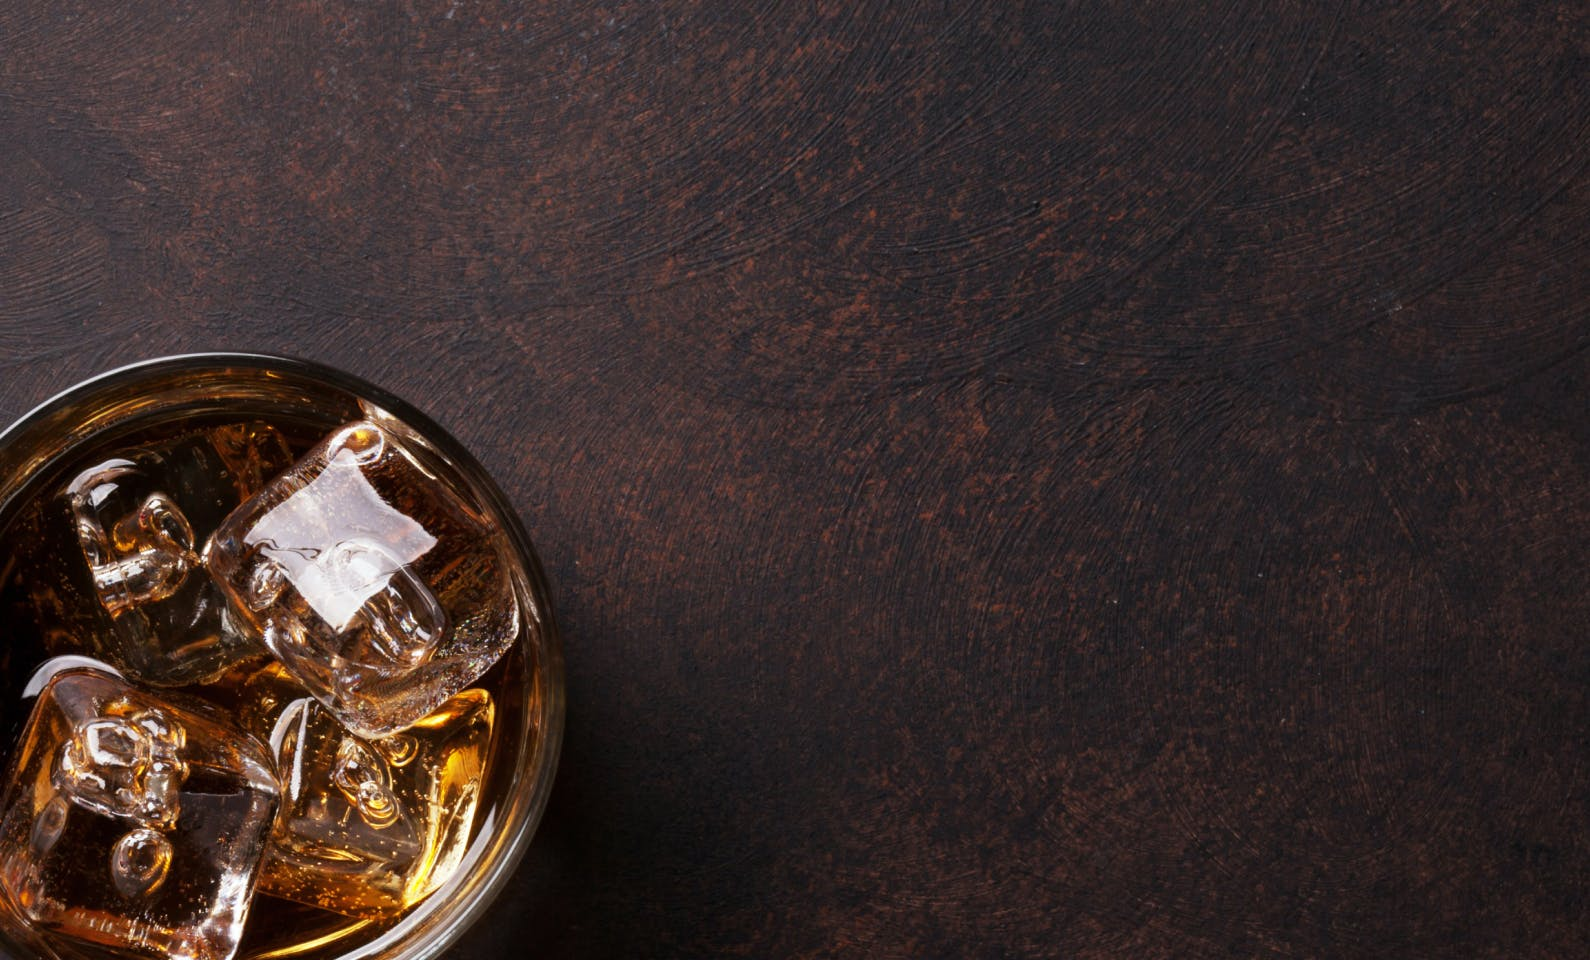 Taking 'The Whisky World' Global